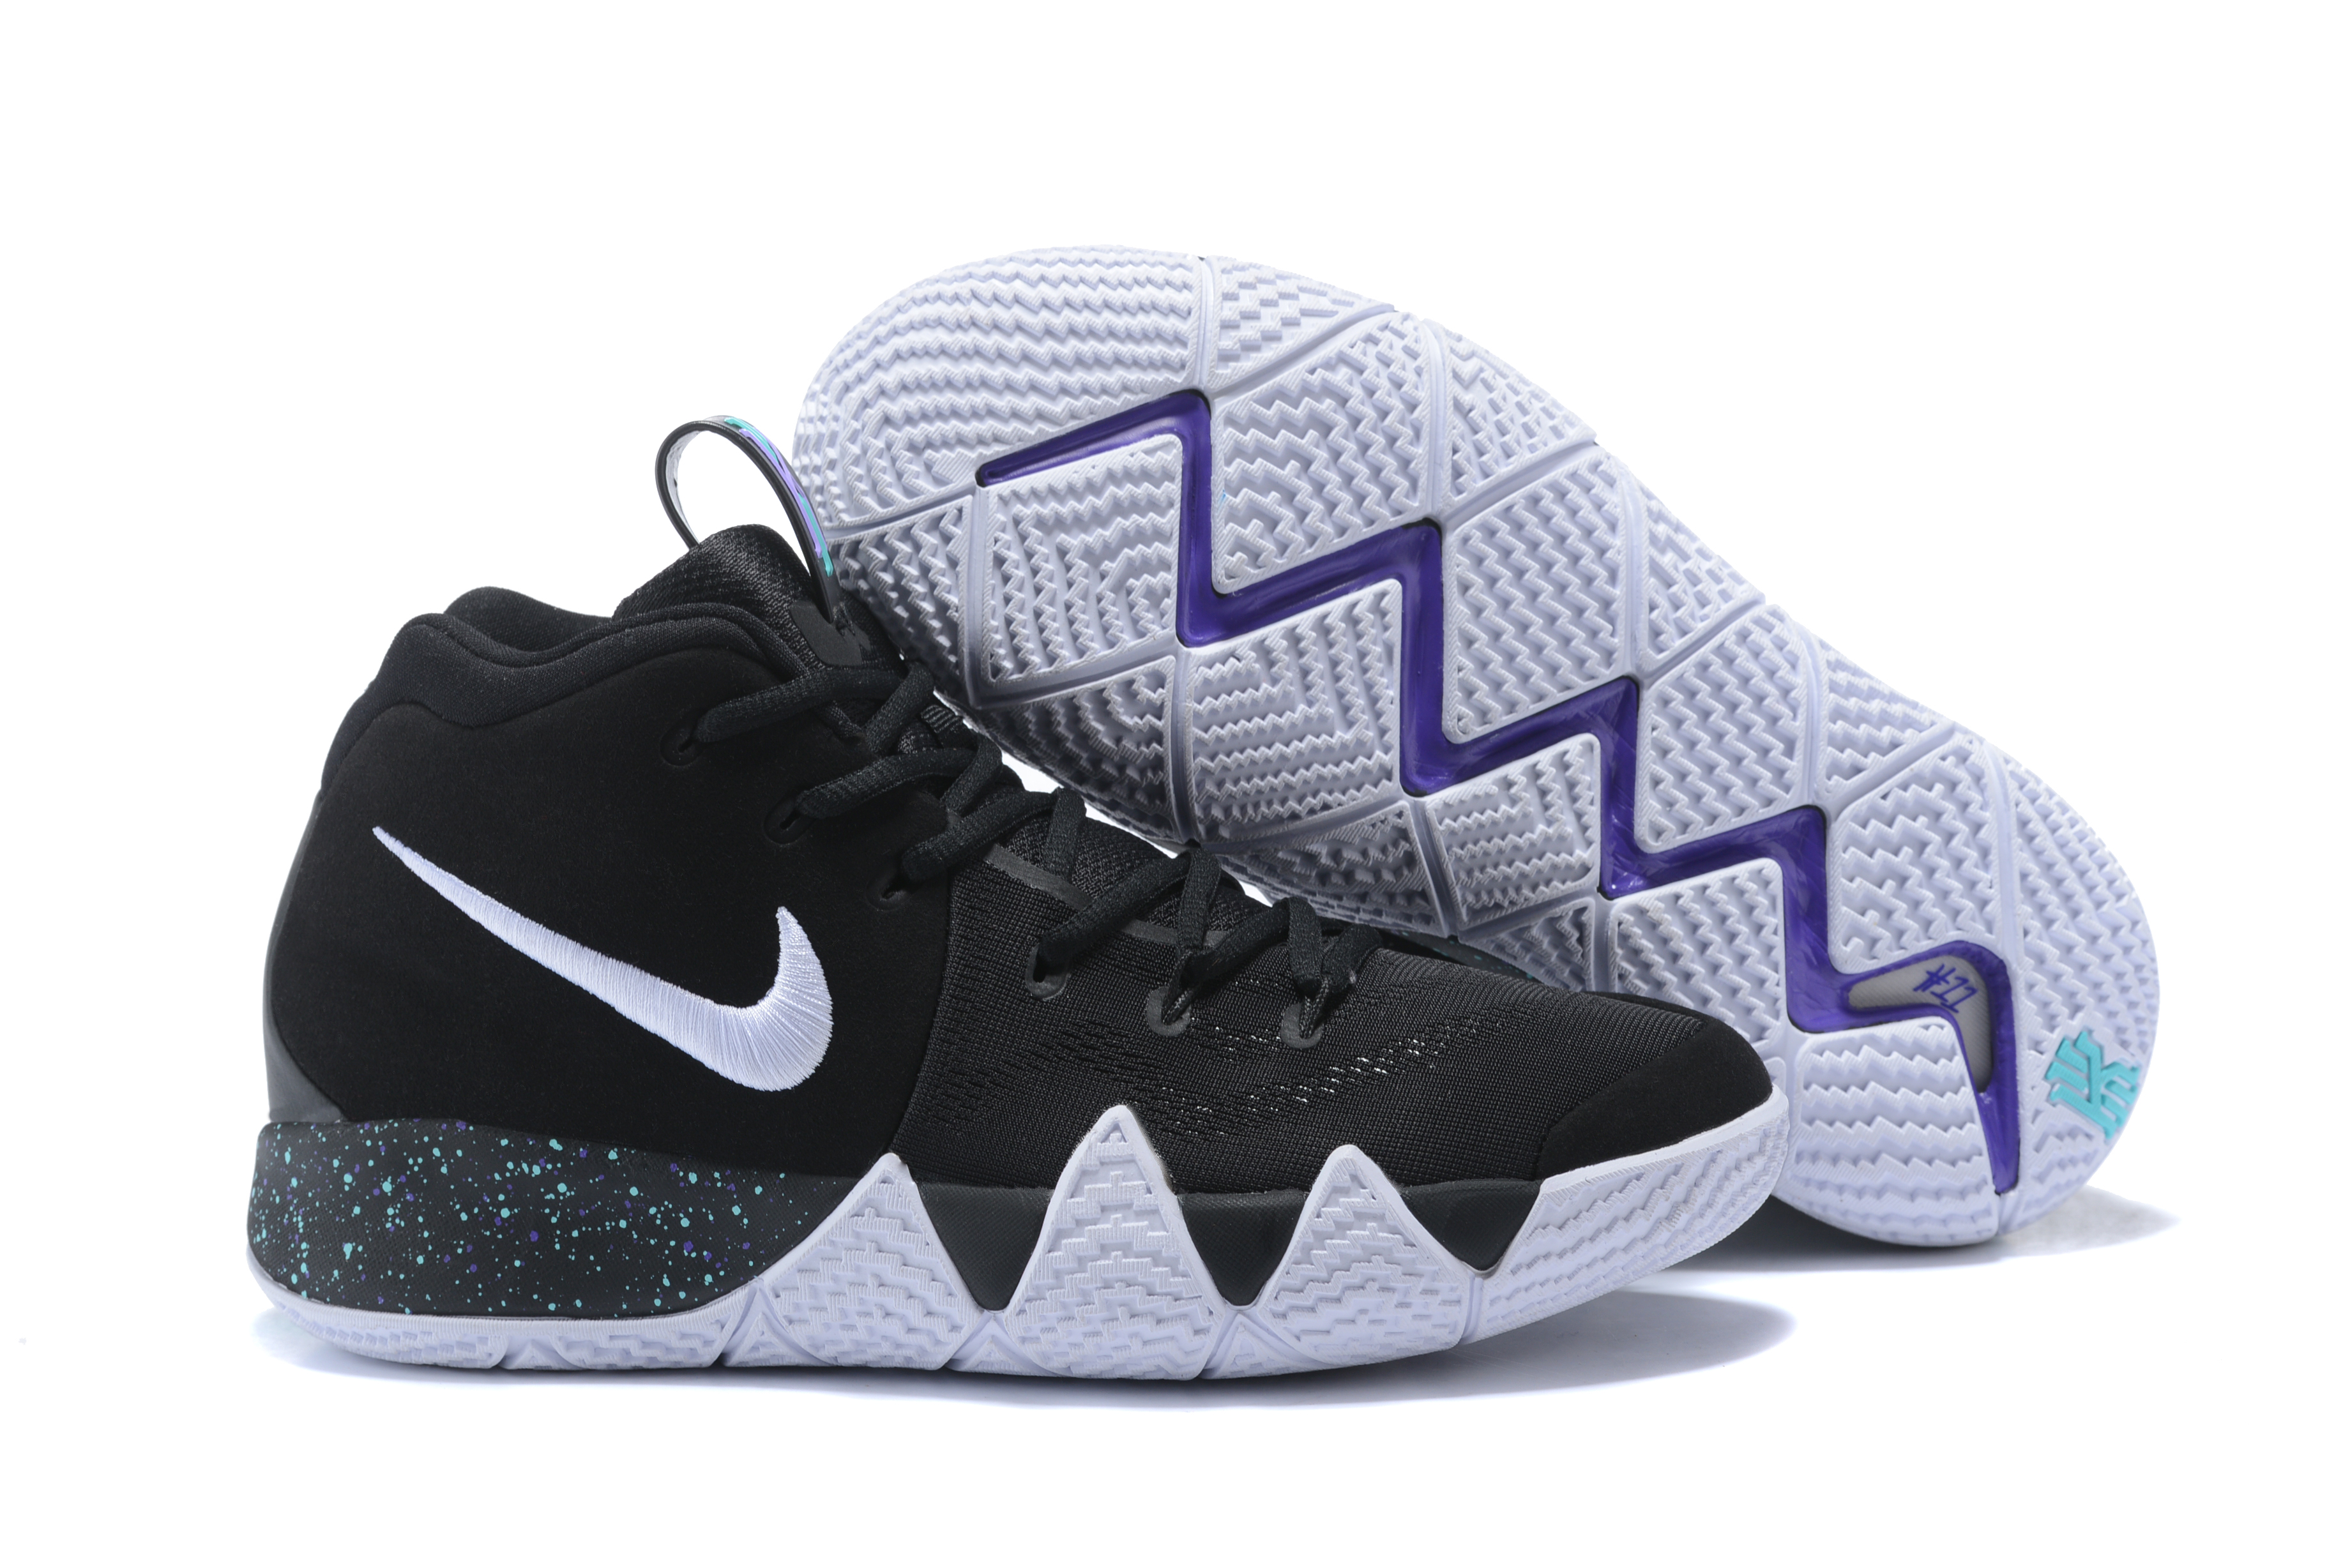 2018 Nike Kyrie 4 Black White Point Shoes